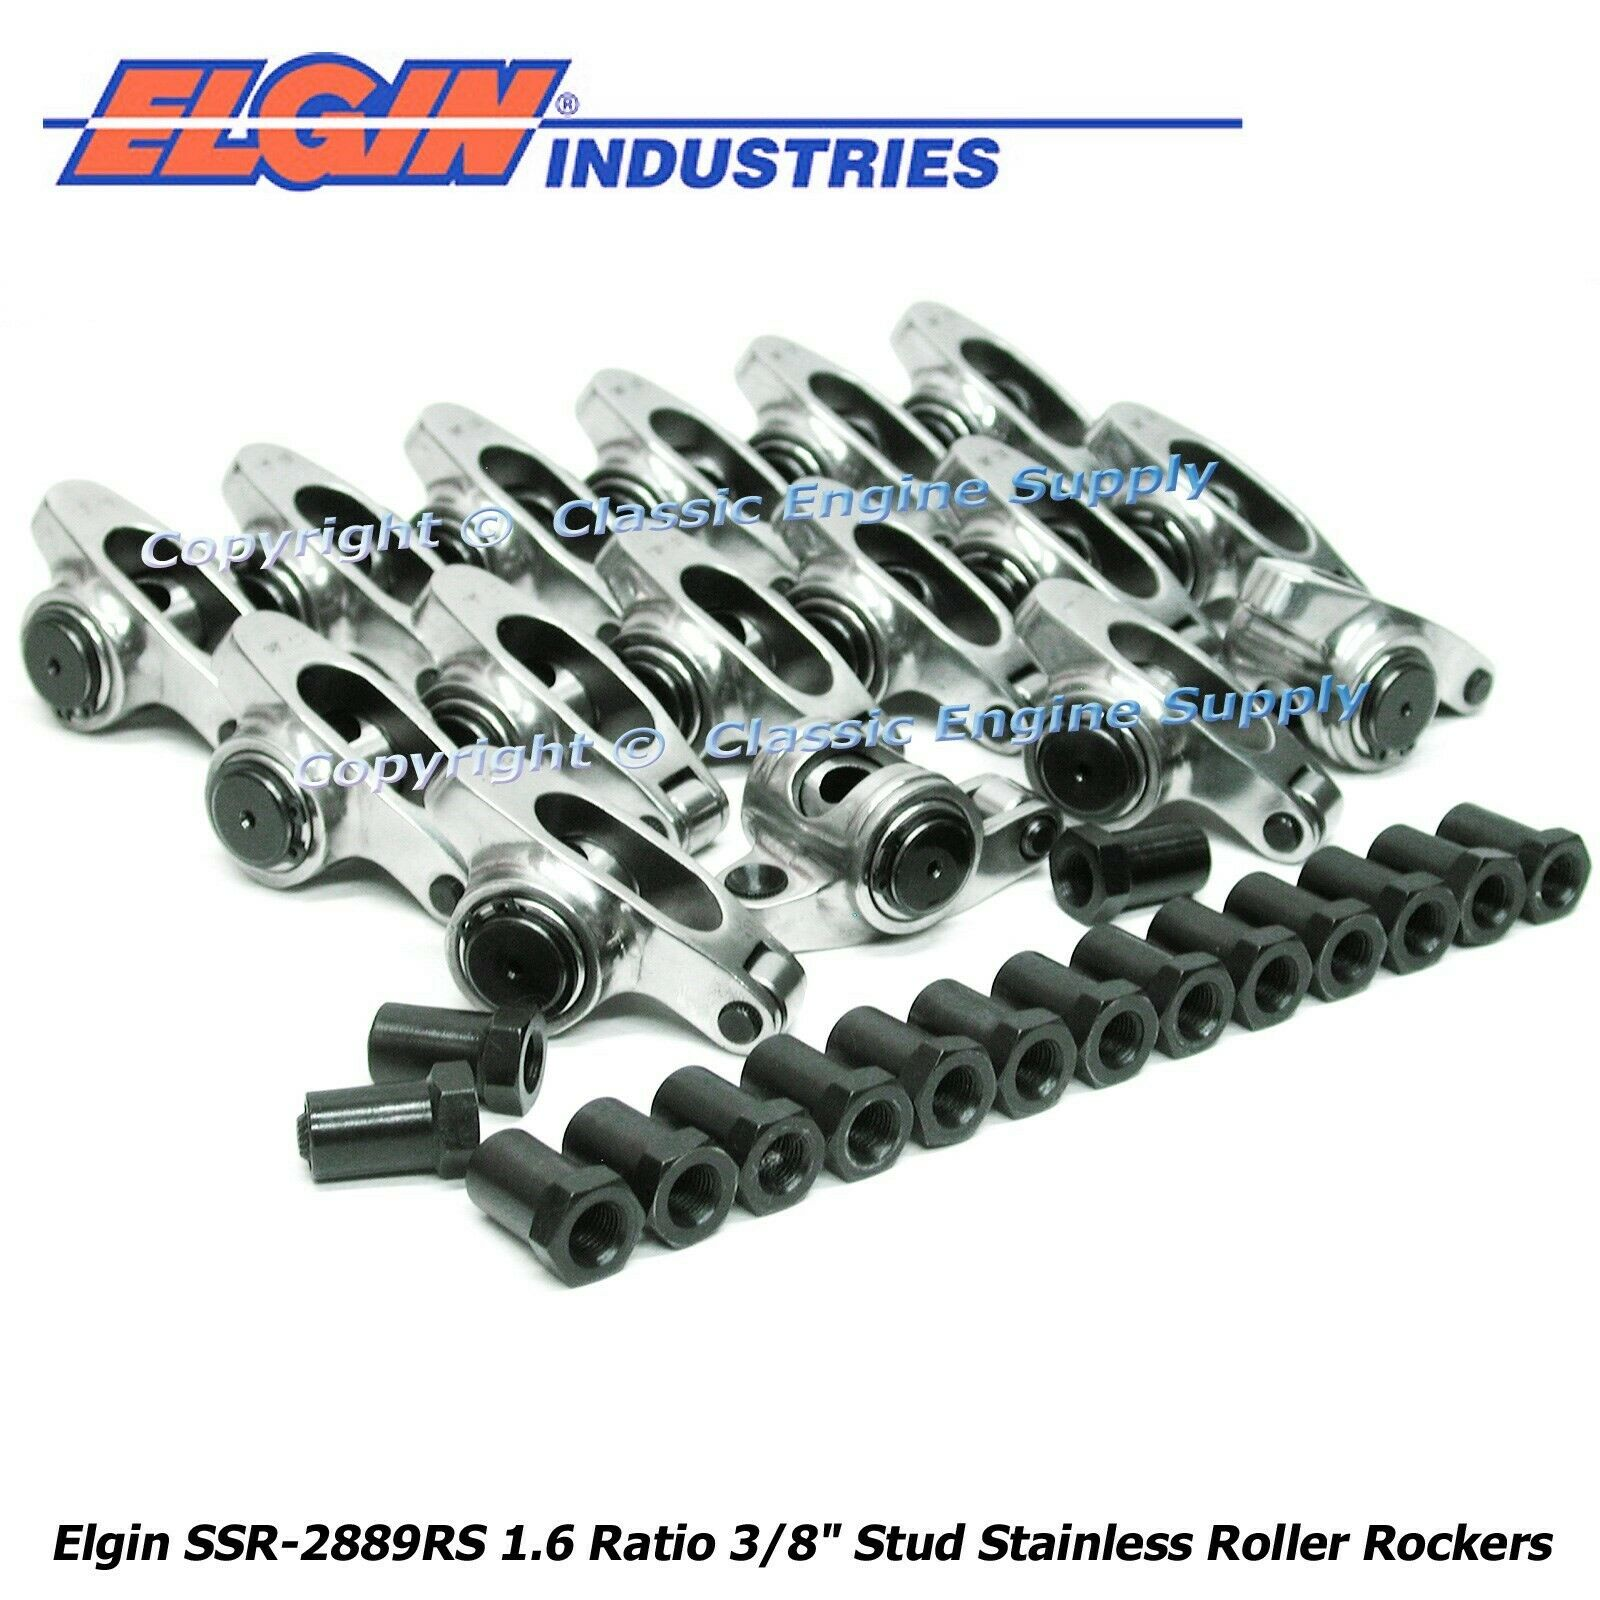 "STAINLESS STEEL ROLLER Rocker Arms 1.6 Ratio 3/8"" Studs"